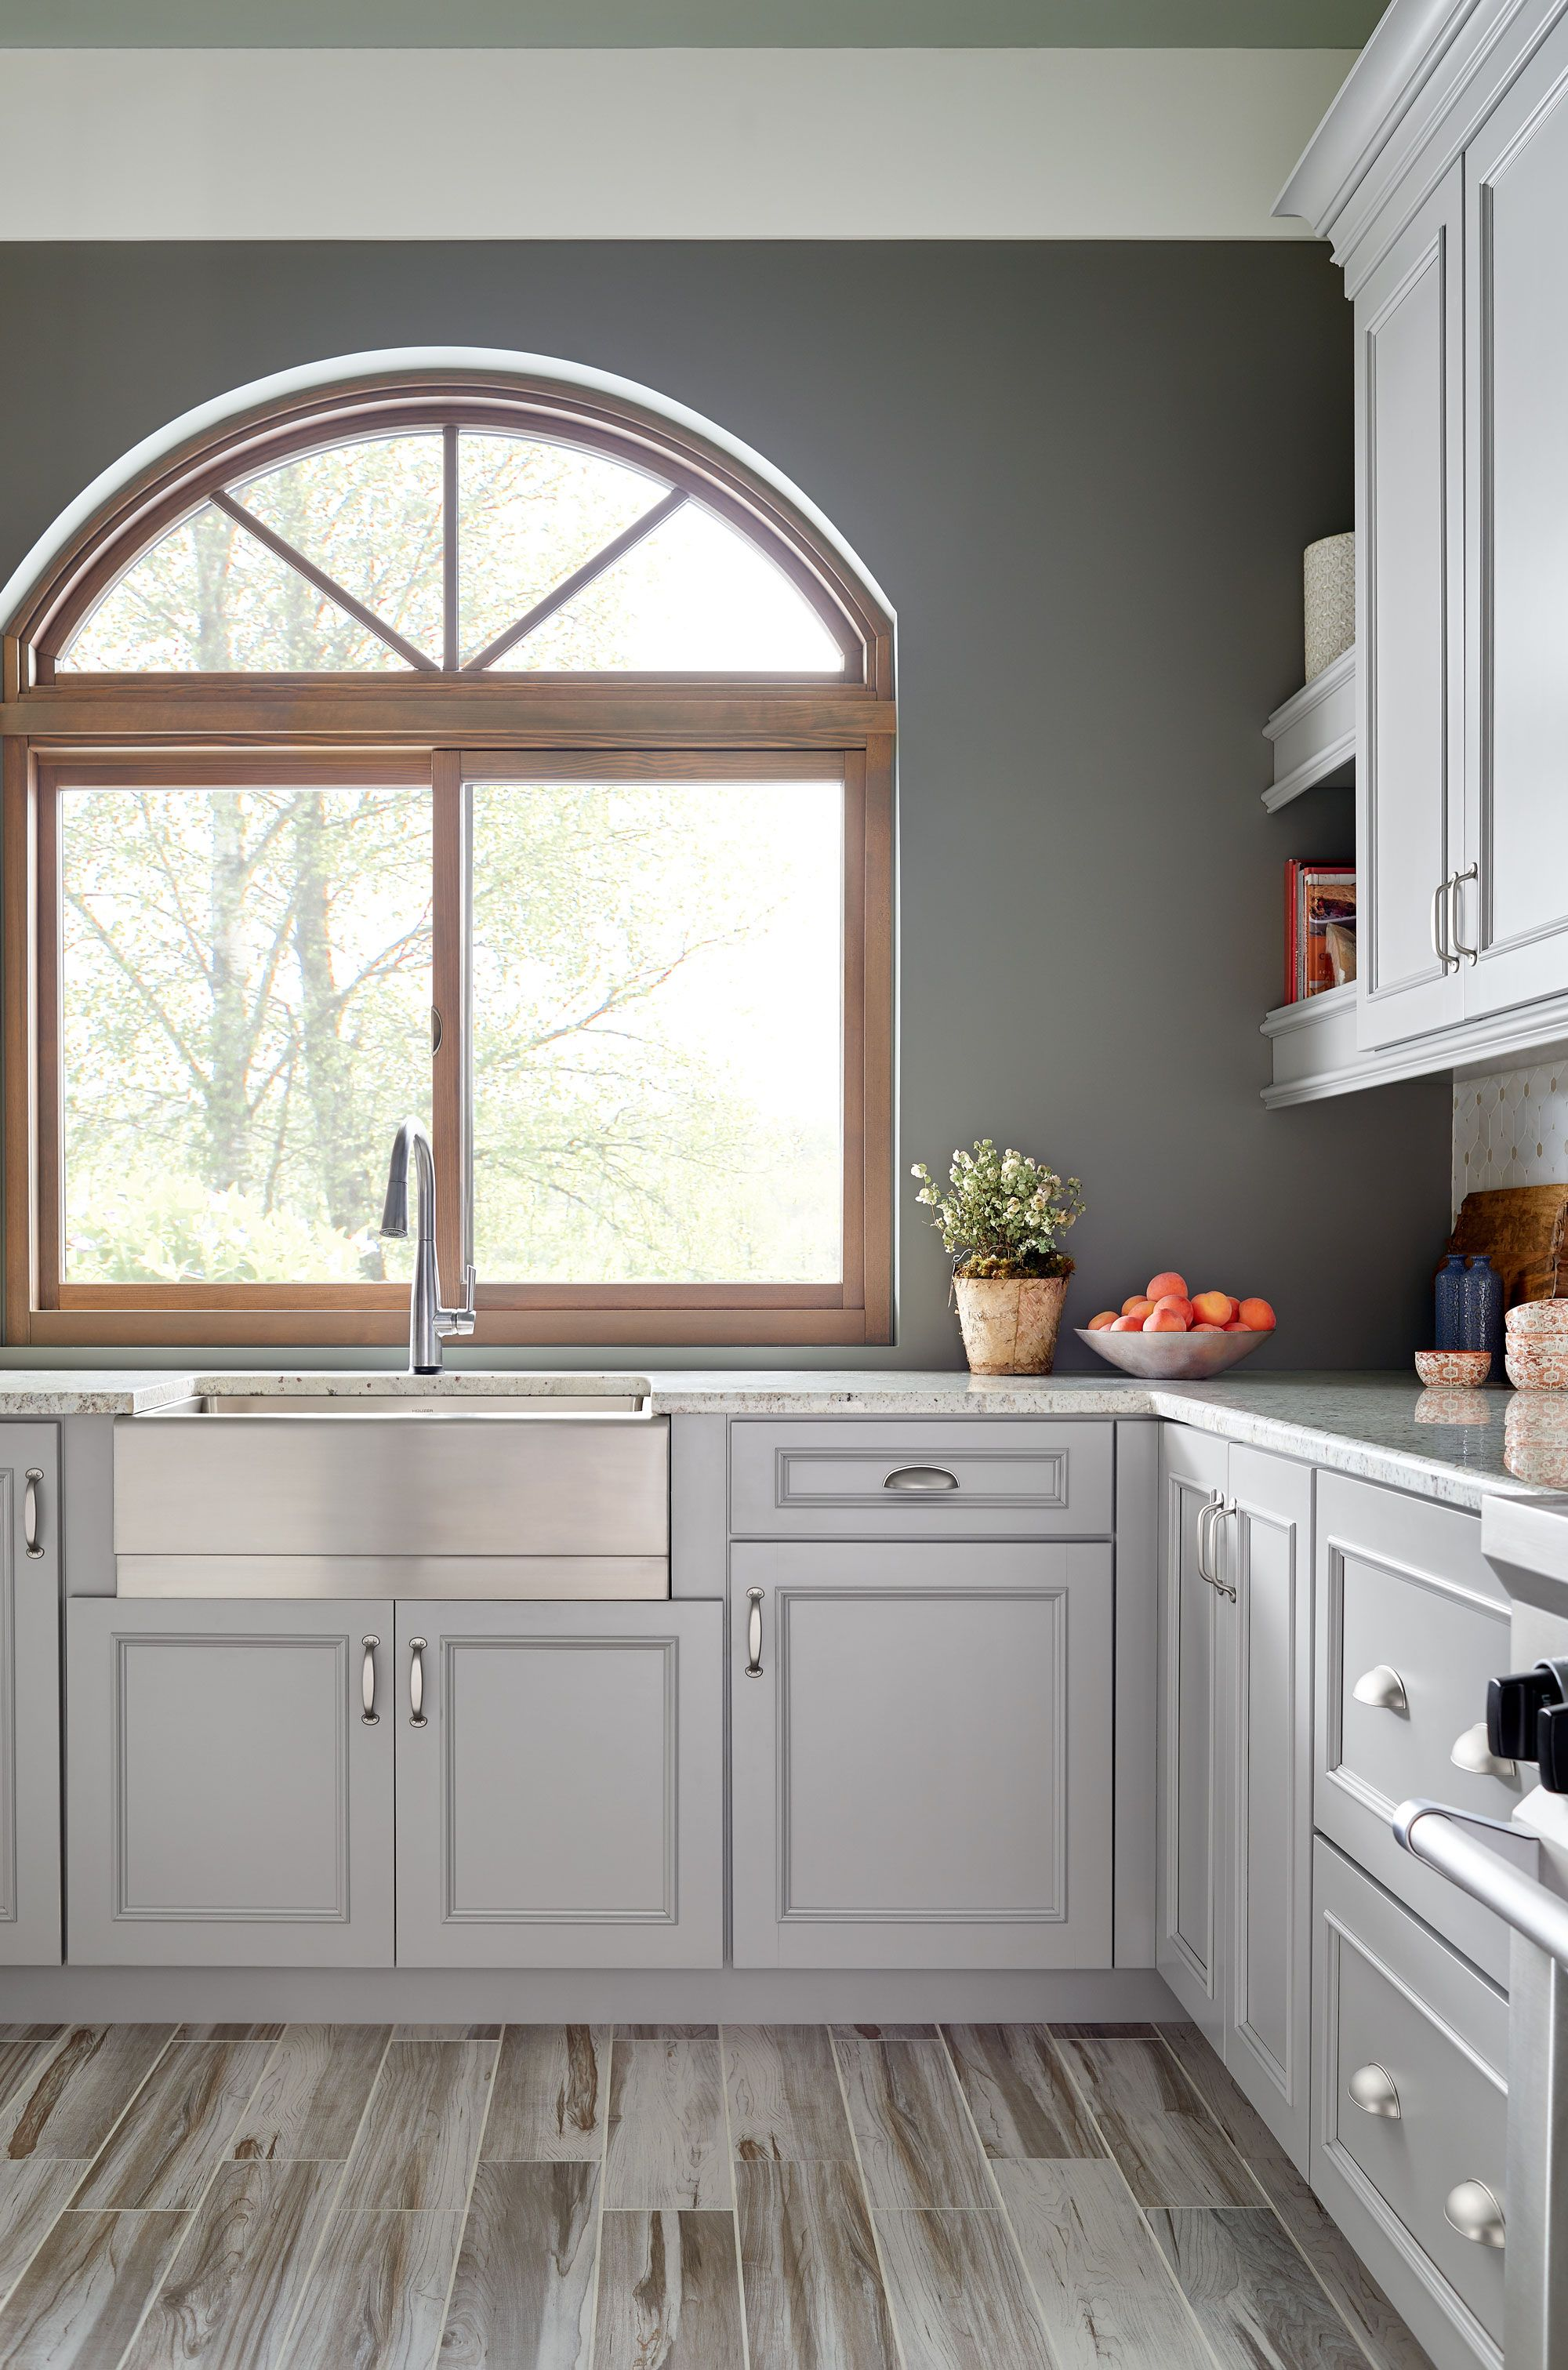 Behr Releases It's First Ever Color of the Year, Plus 19